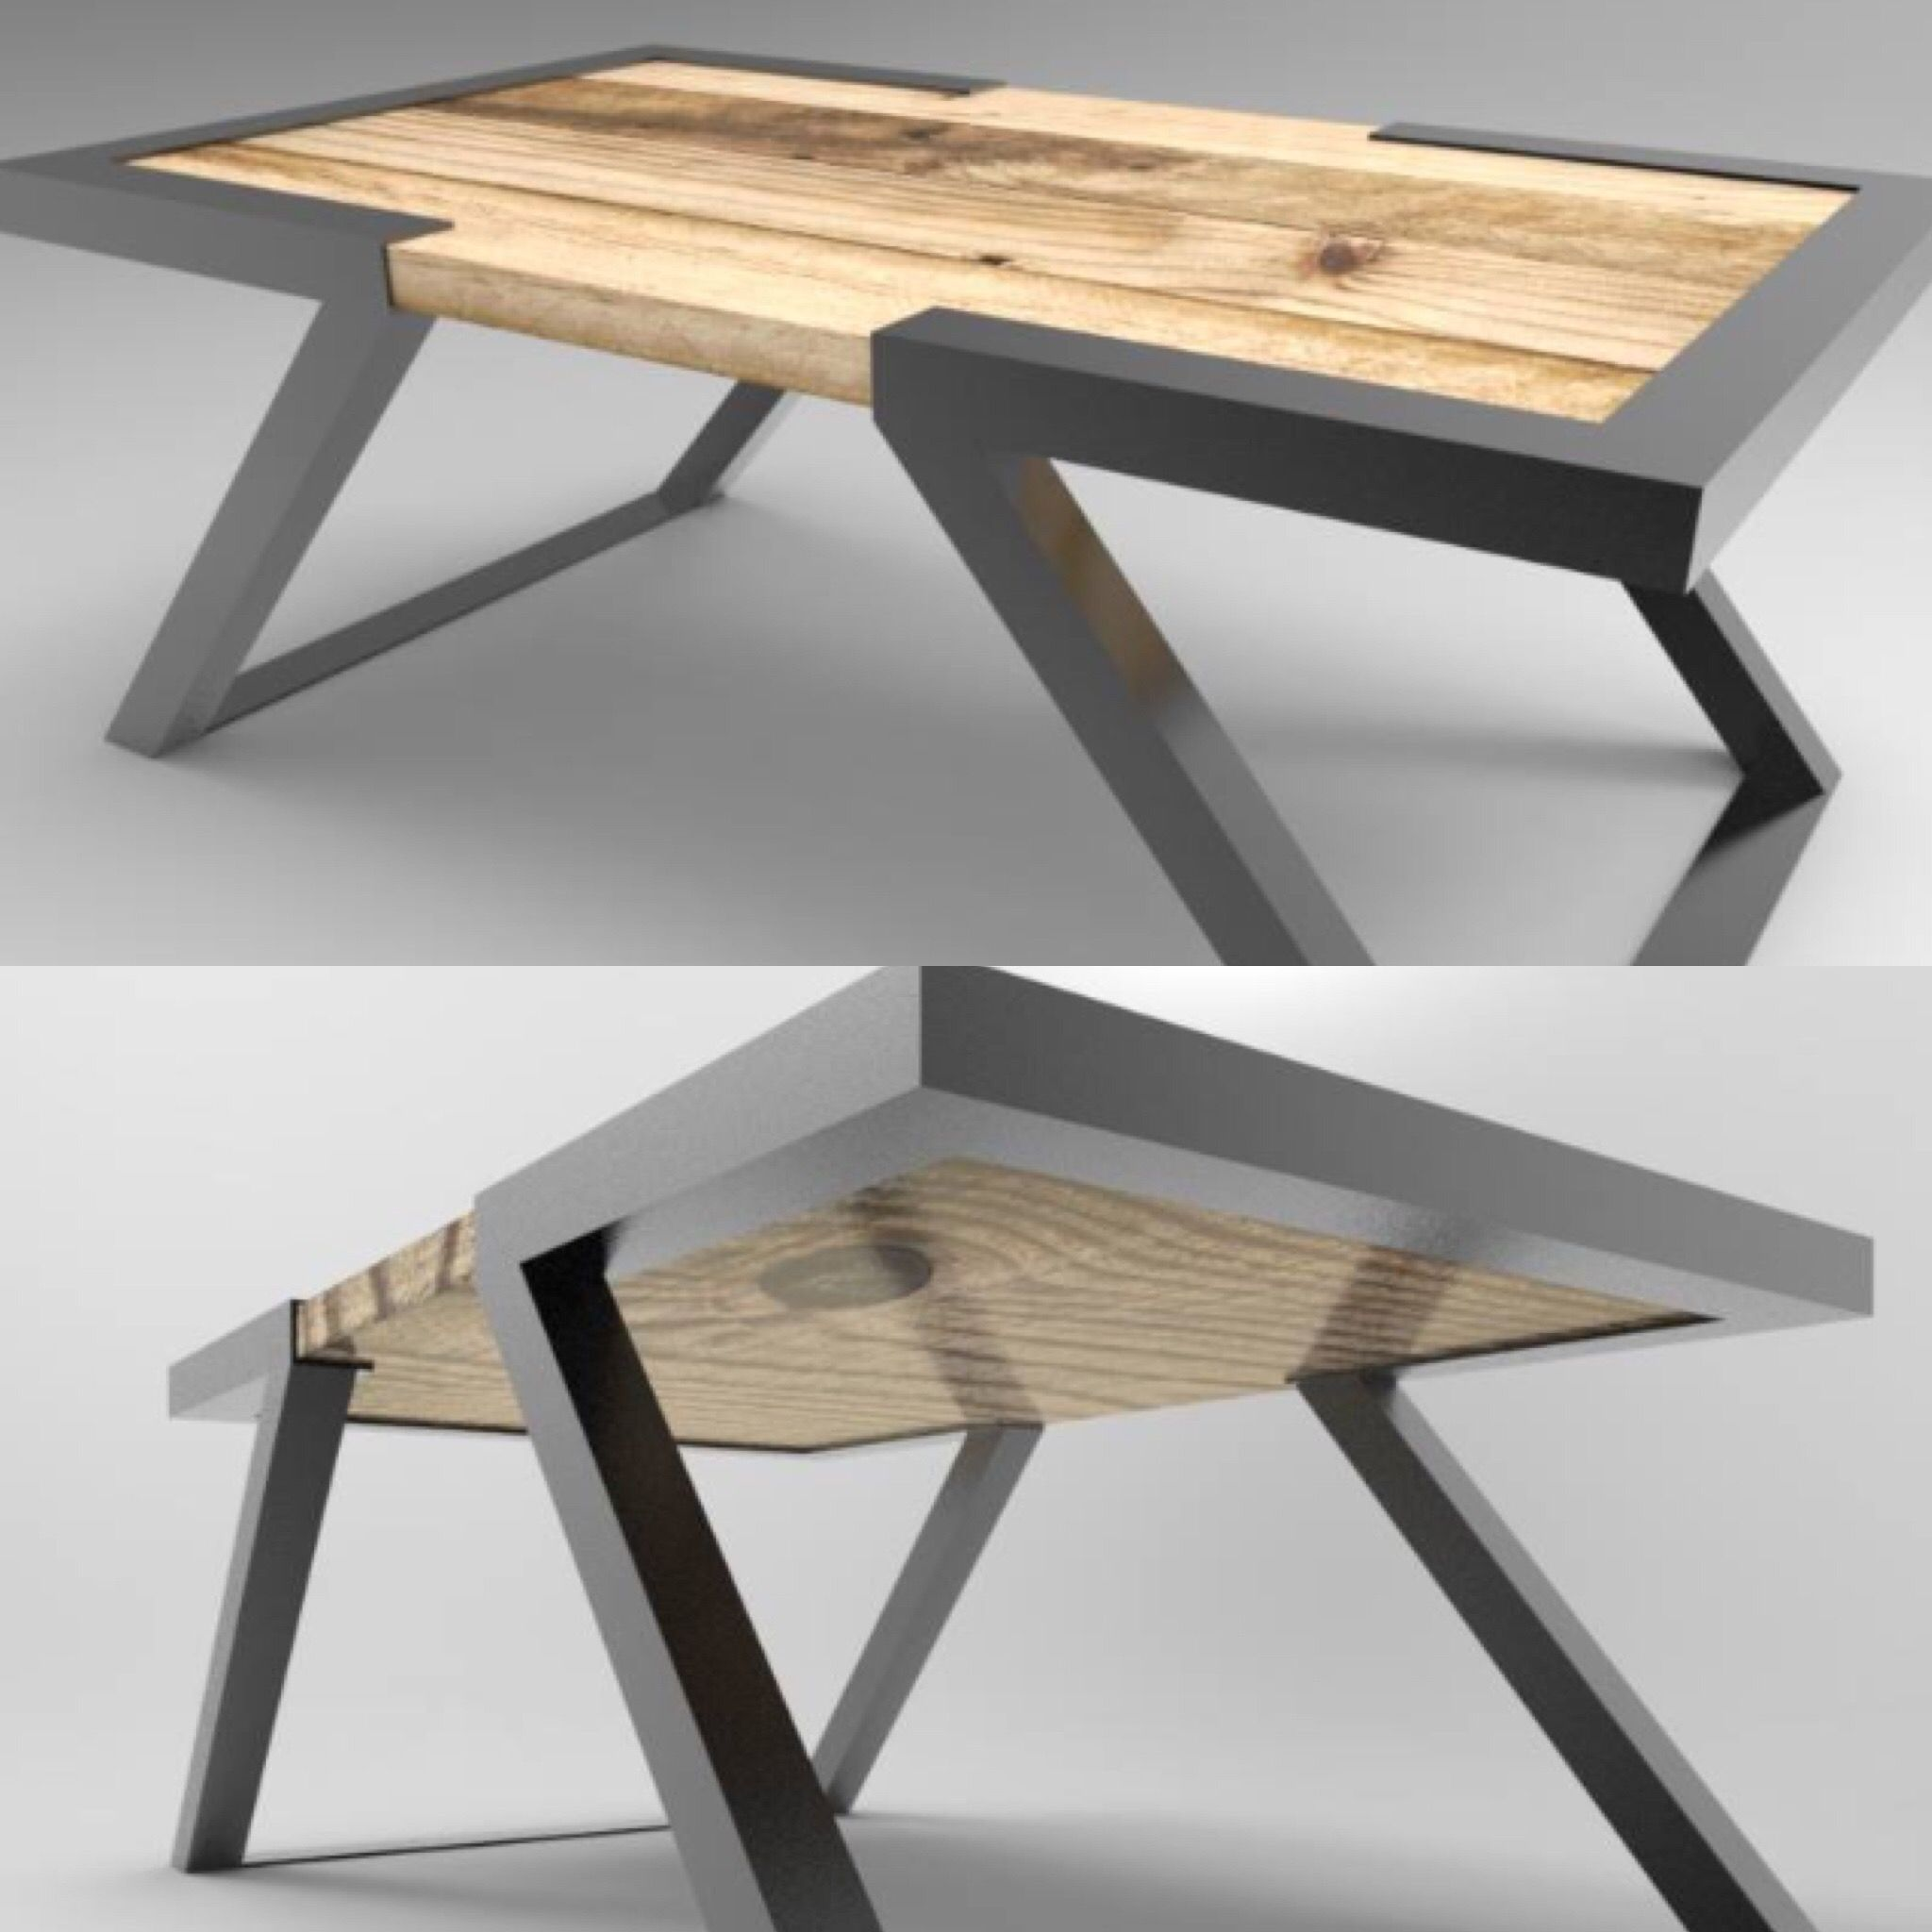 Pin By William Wu On Mobilier Design Welded Furniture Metal Furniture Design Steel Furniture [ 2048 x 2048 Pixel ]